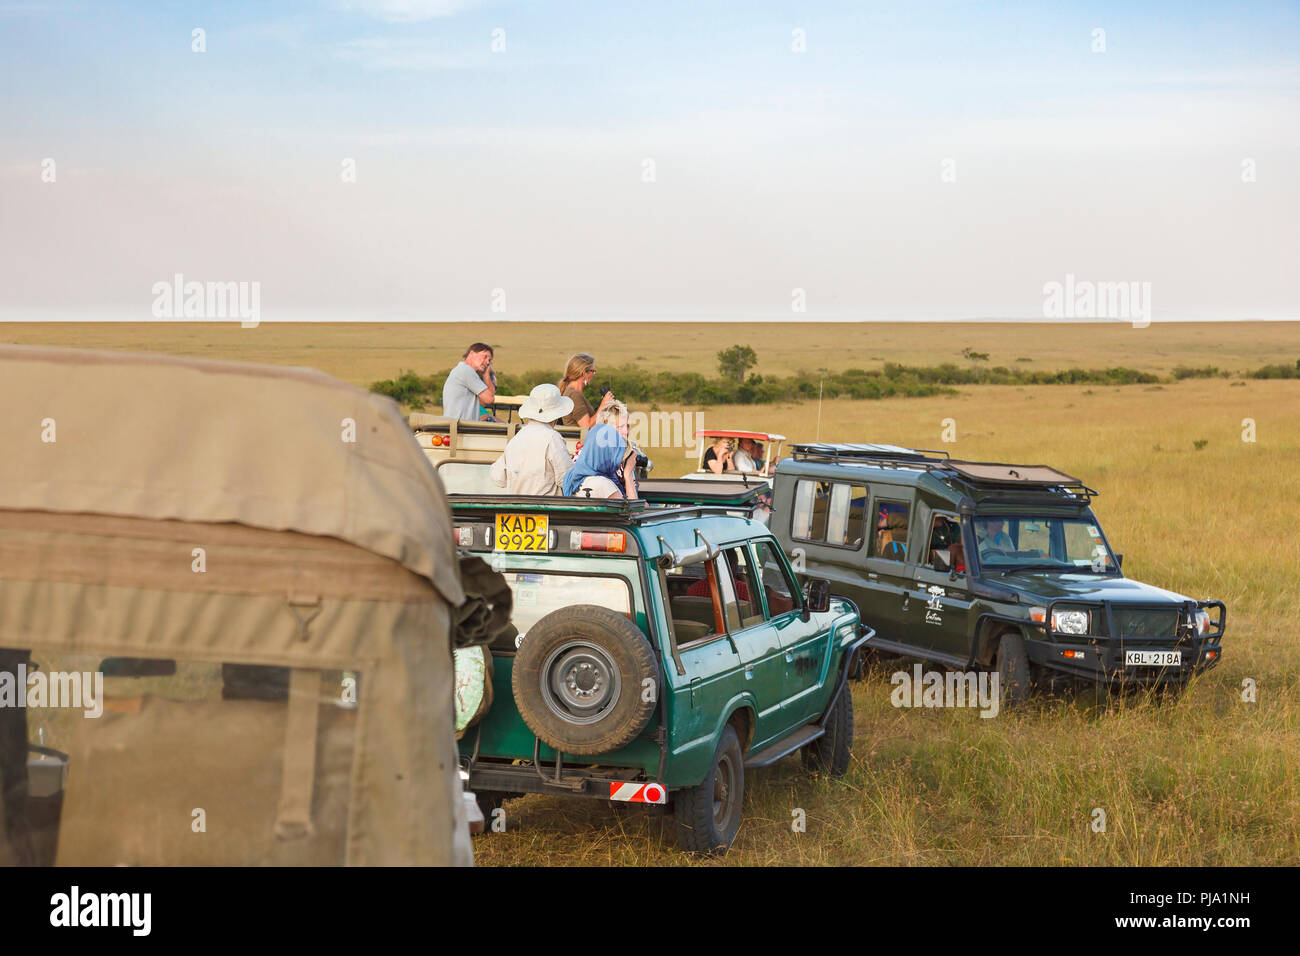 Game drive with tourists watching the wildlife on the savanna in Africa - Stock Image